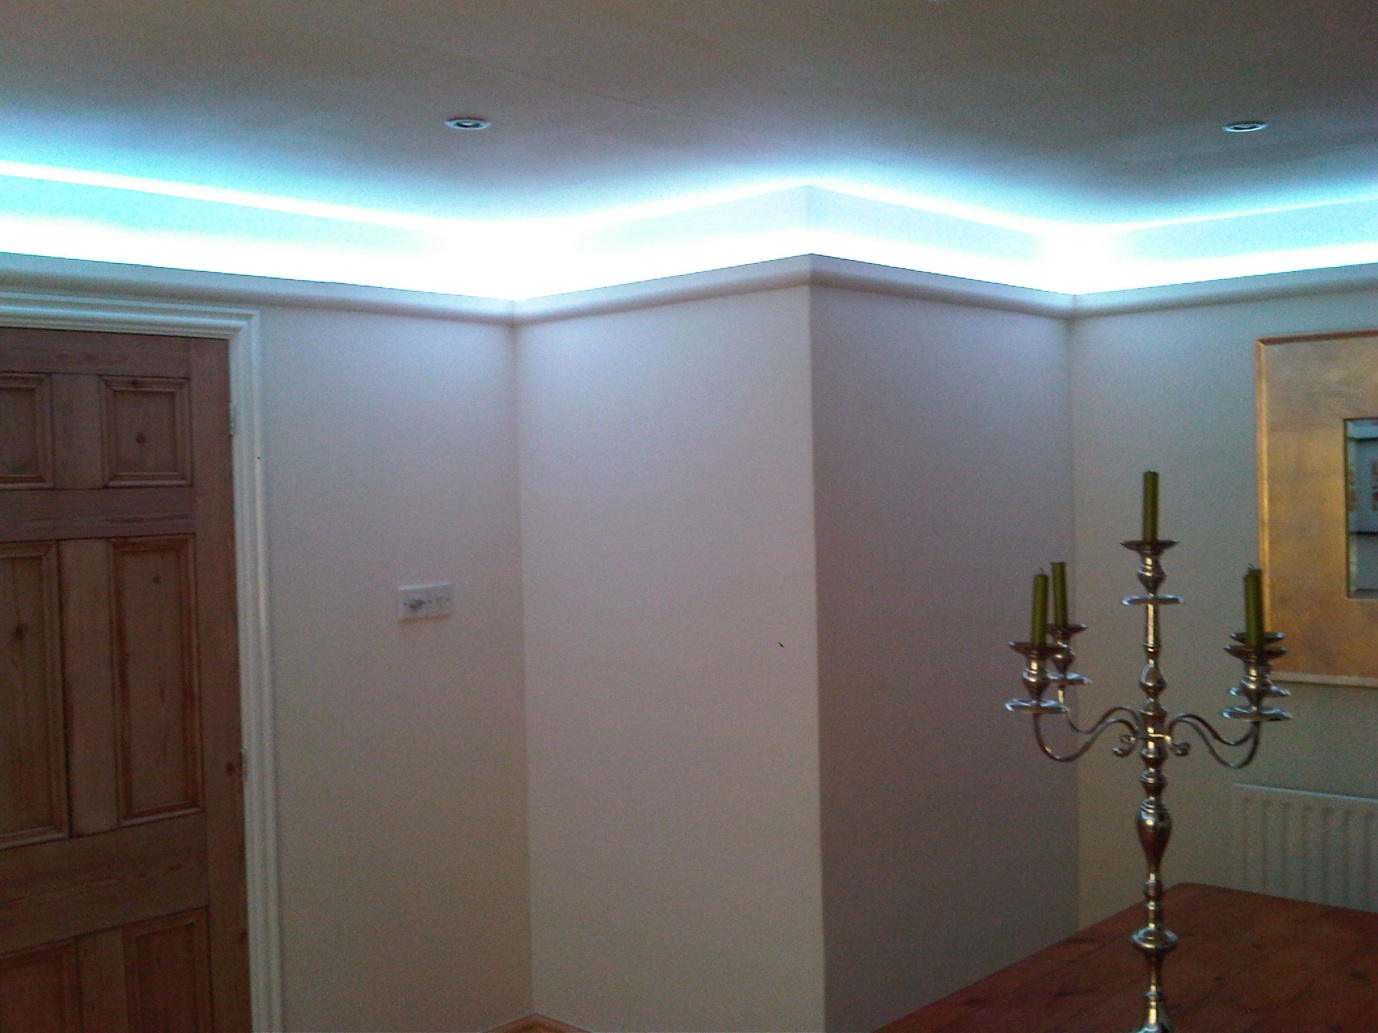 Instyle led lighting ideas of where to use the led tape Led lighting ideas for living room